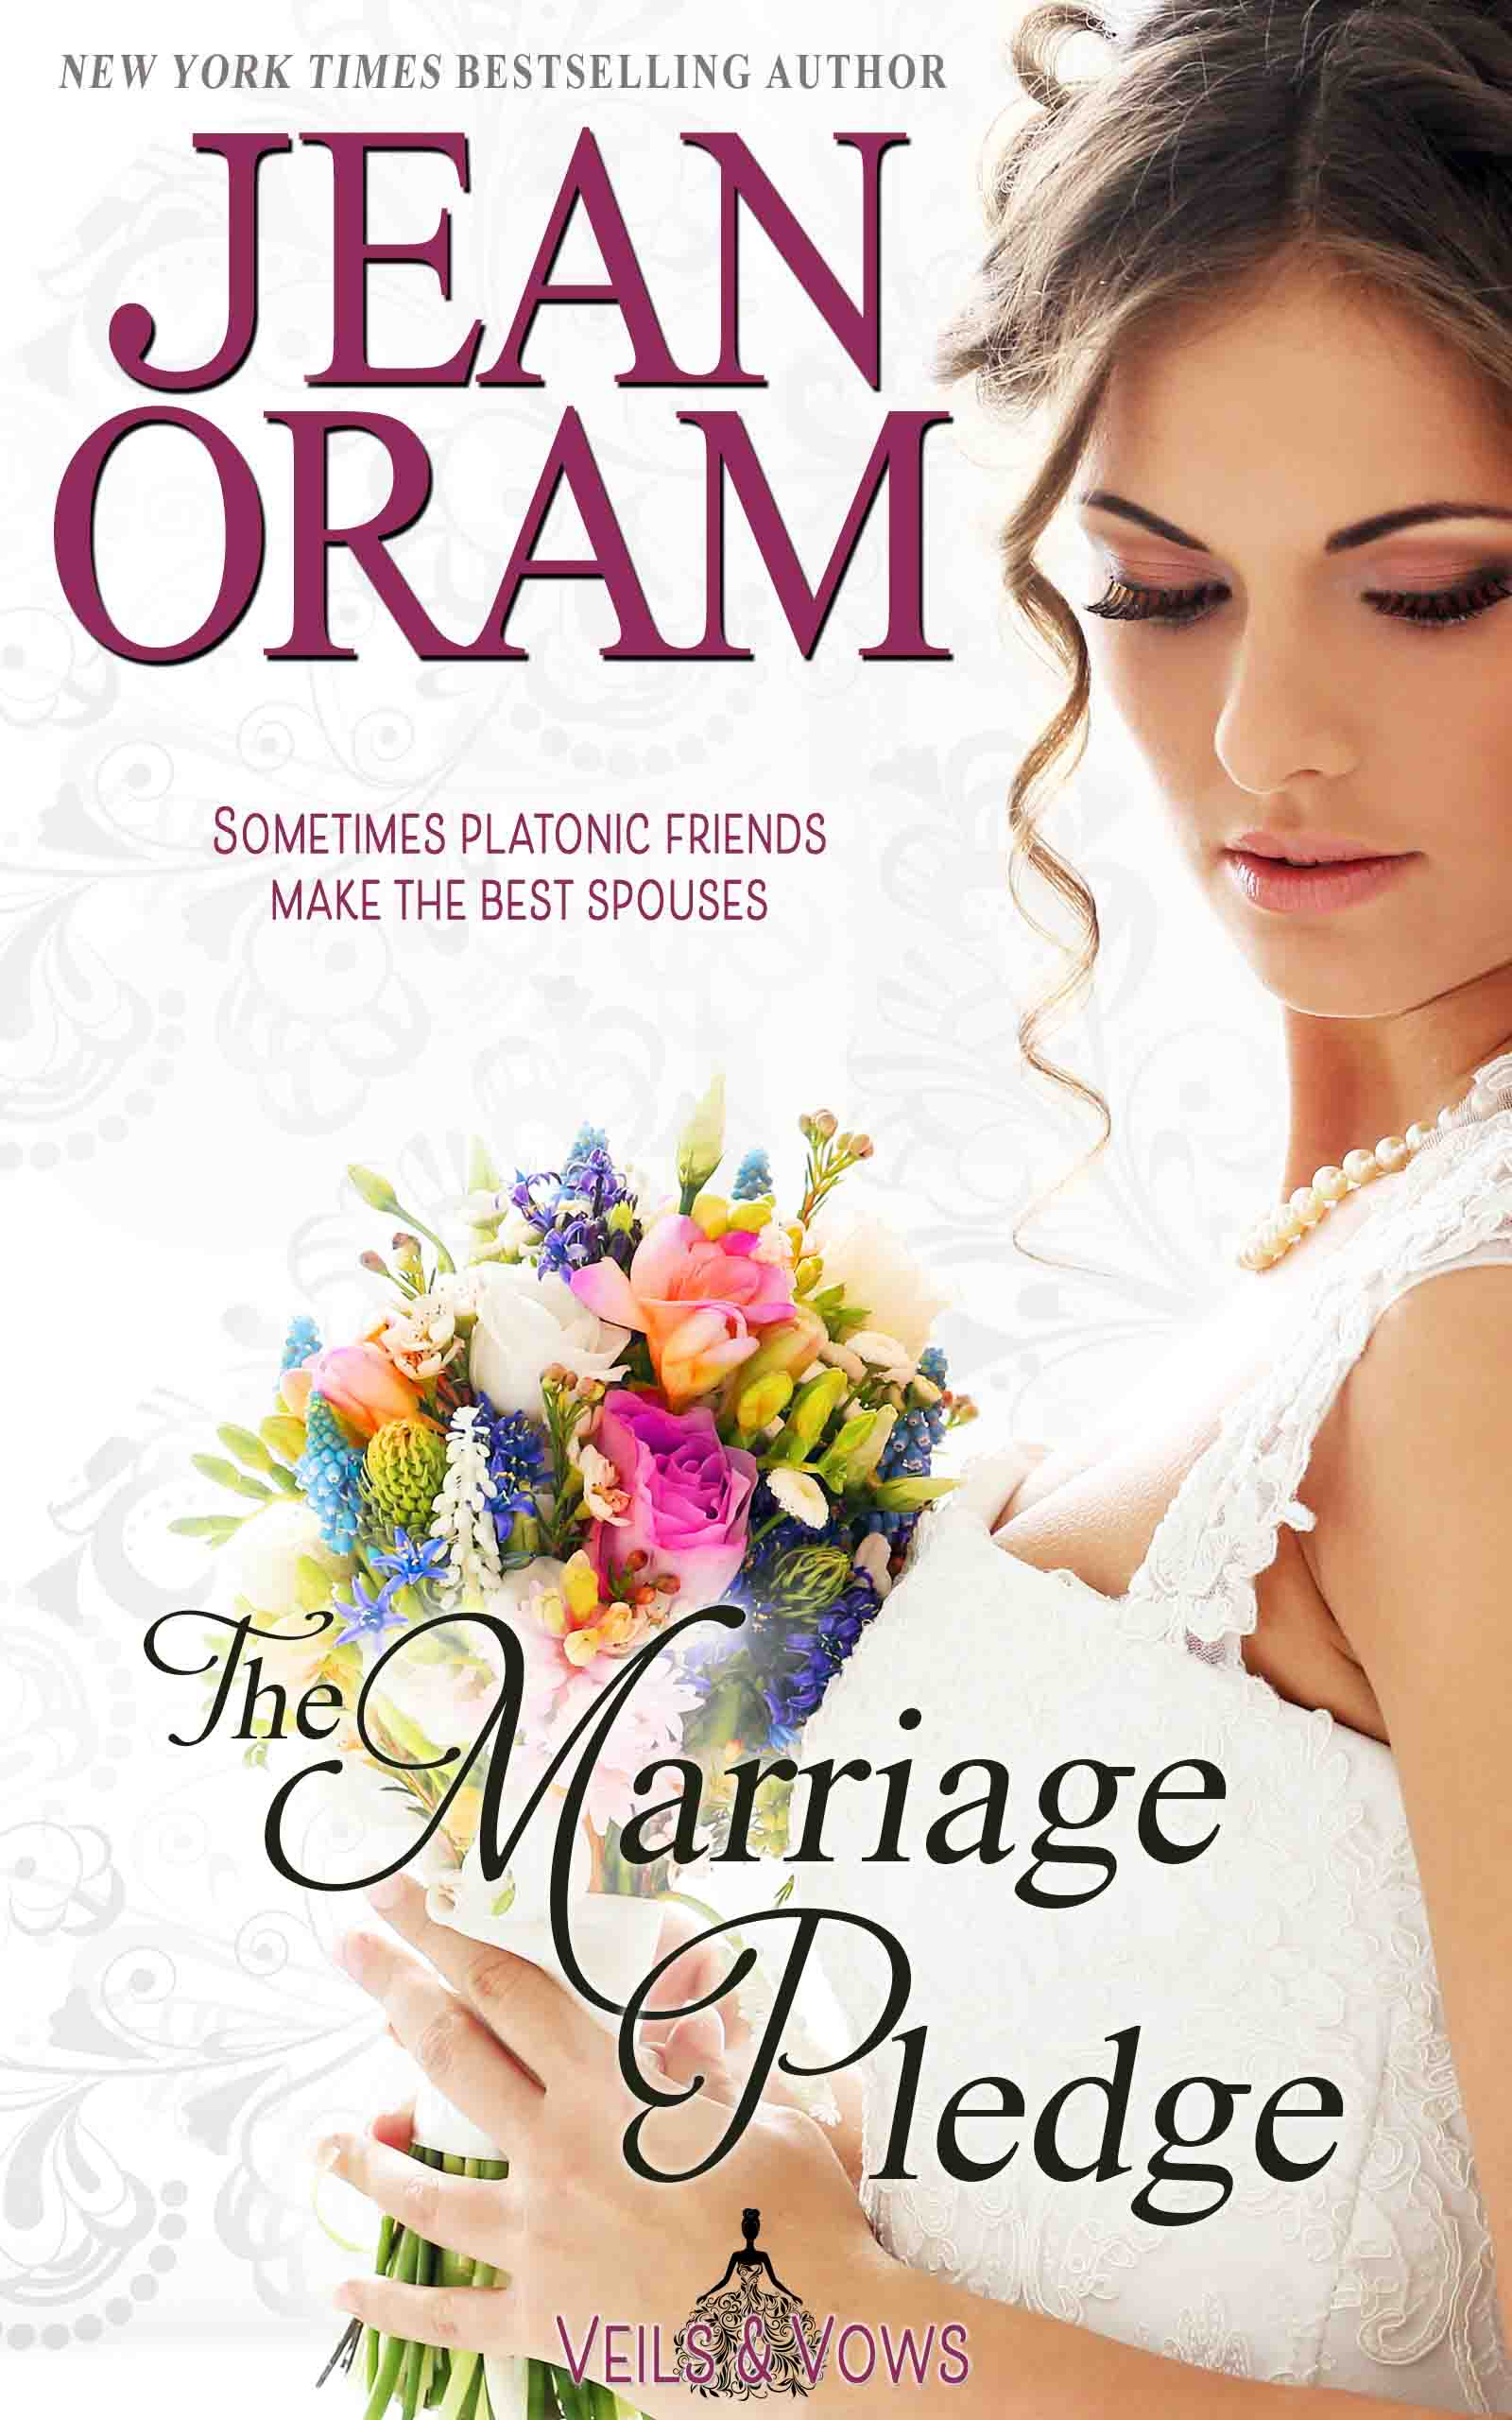 A fake marriage of convenience romance between best friends. Sweet MOC small town romance. Book 1 in the Veils and Vows series by Jean Oram. Book 5 in the Veils and Vows series by Jean Oram.